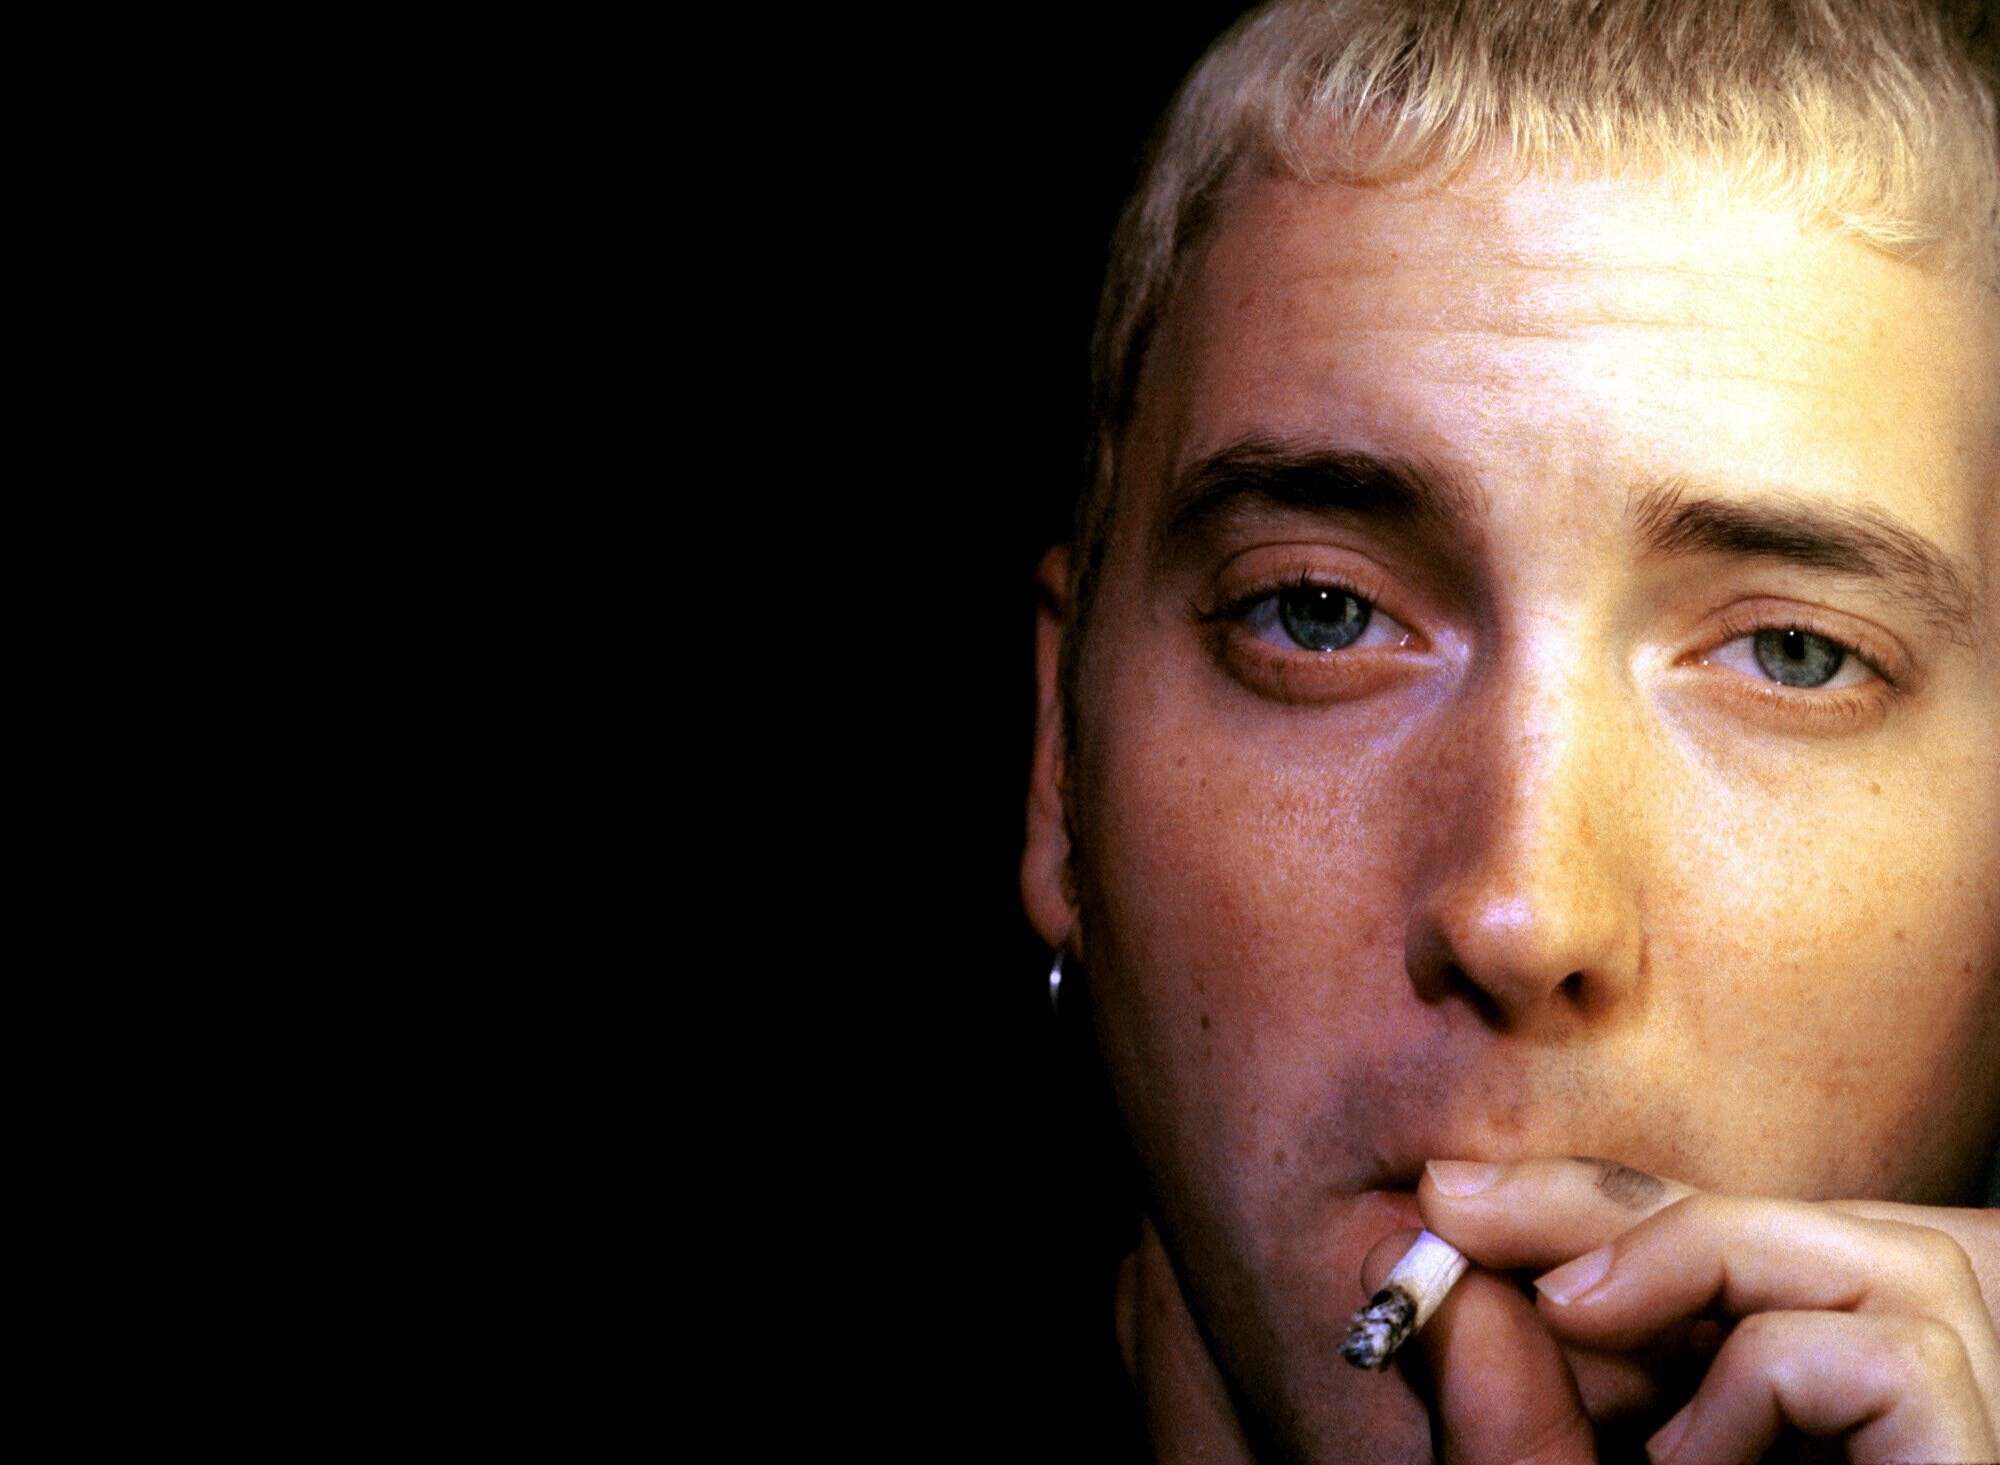 eminem beautiful pictures hd